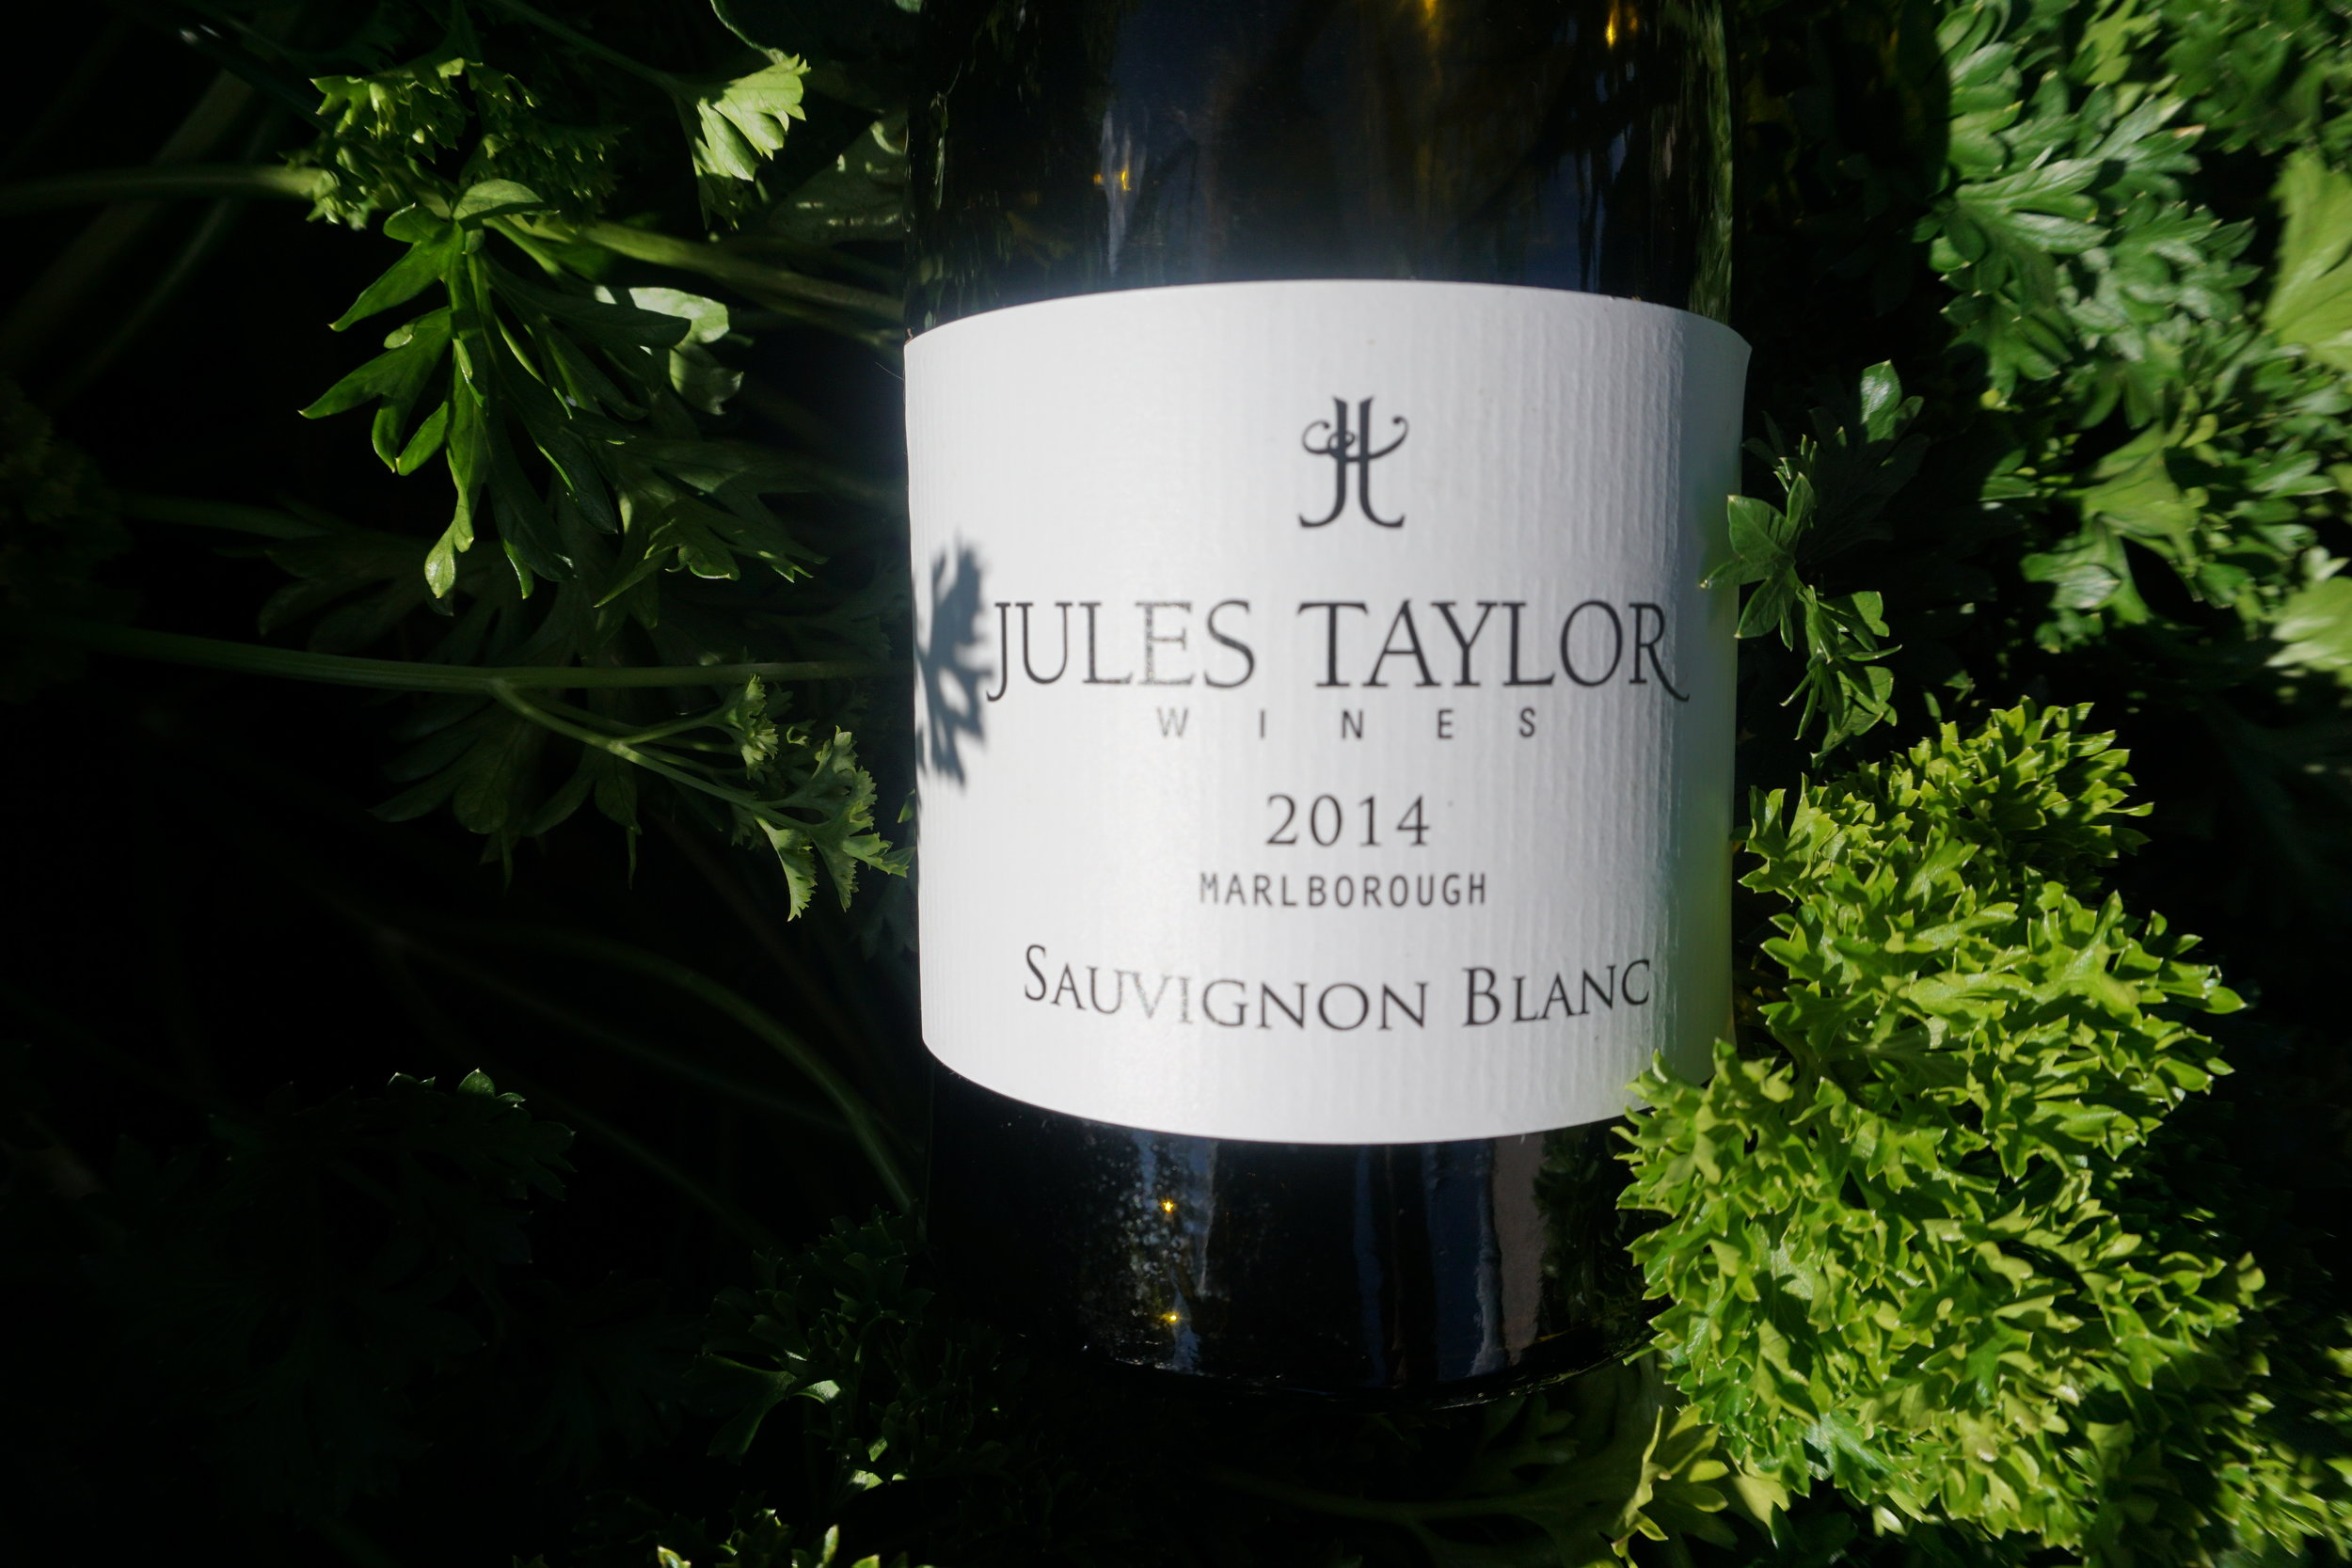 Jules Taylor Wines, Marlborough -  2014 Sauvignon Blanc - shows some ripe stone fruit on the finish. Viki Eierdam